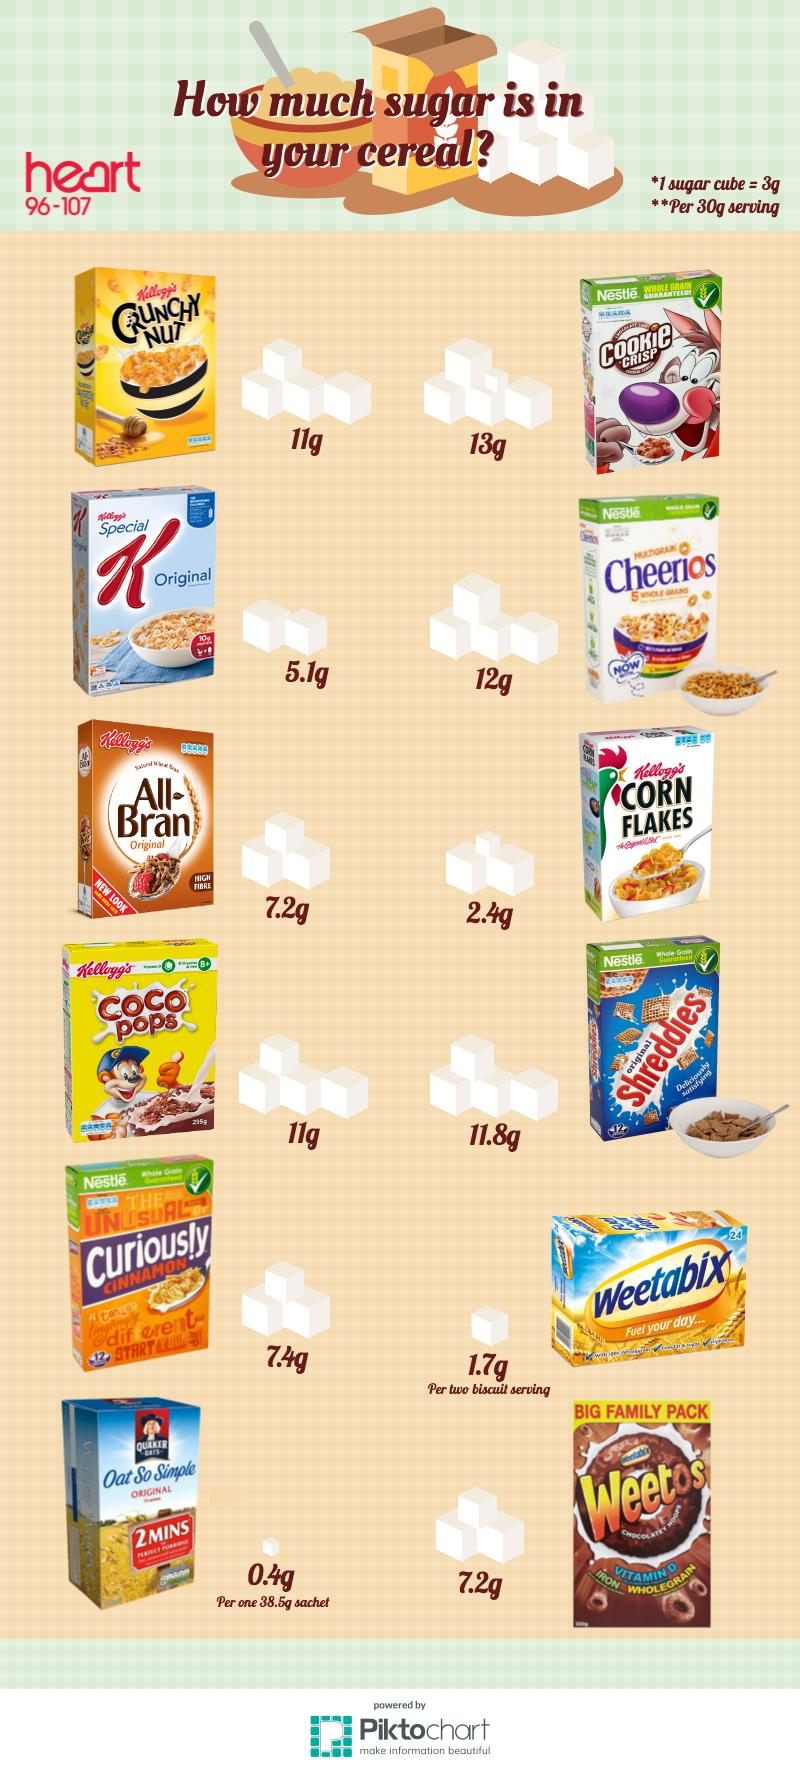 how much sugar is in your cereal? Infographic